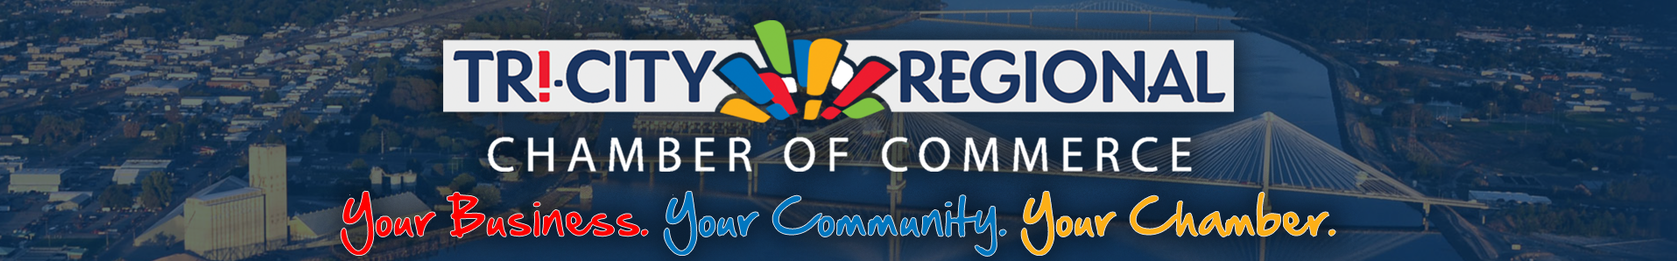 Tri-City Regional Chamber of Commerce | Kennewick, WA